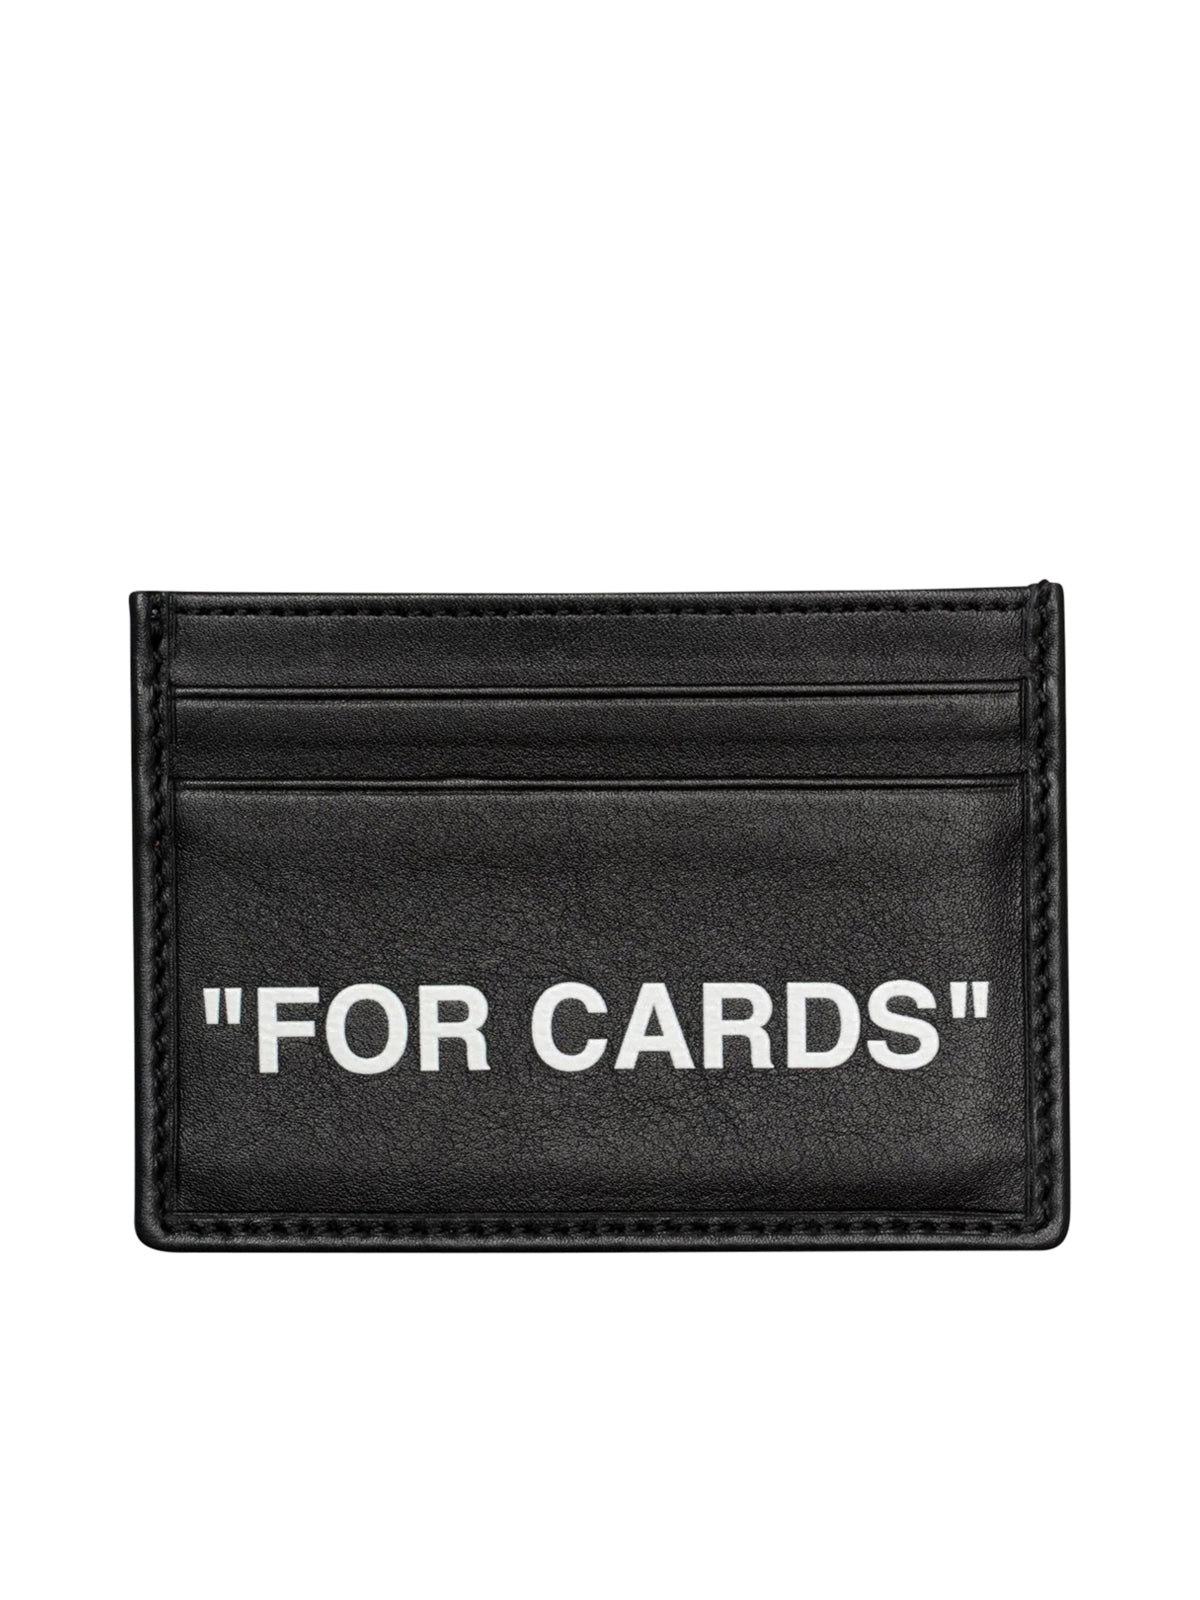 "PORTA CARTE DI CREDITO ""FOR CARDS"" IN PELLE"